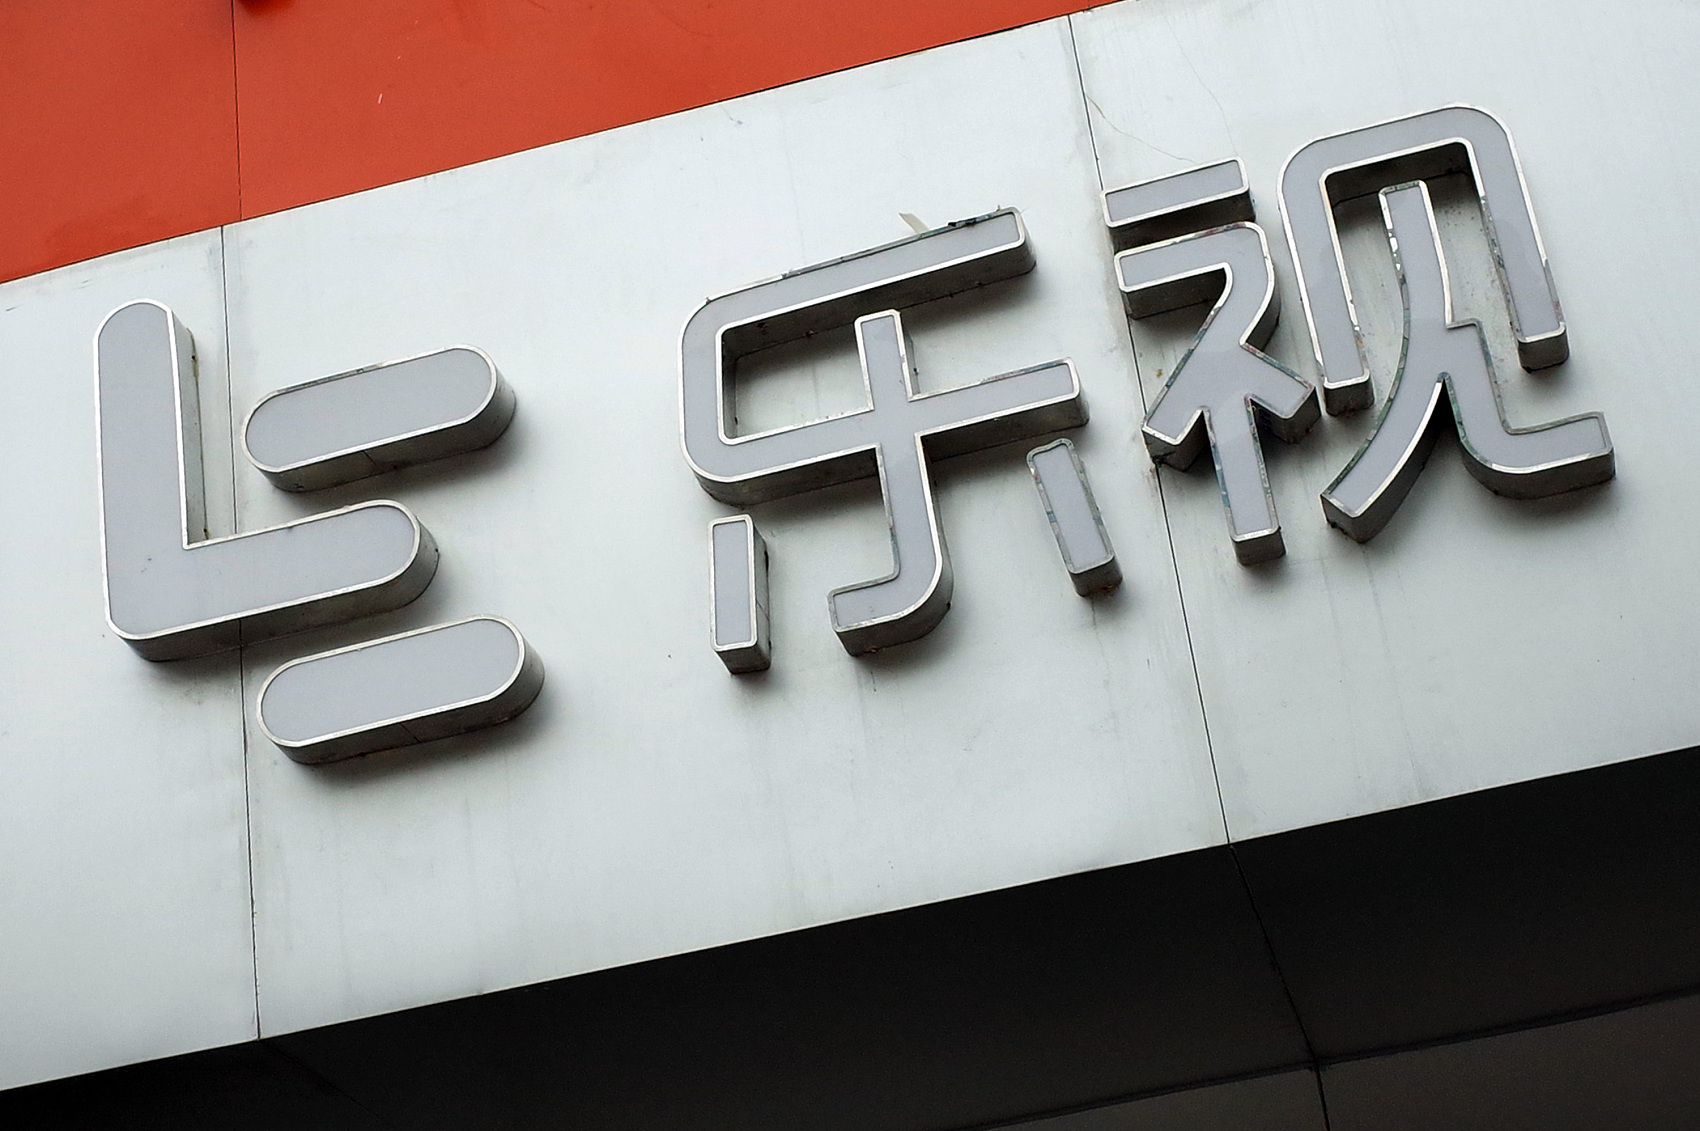 Largest ever fine given to LeTV over illegal and fraudulent information disclosure